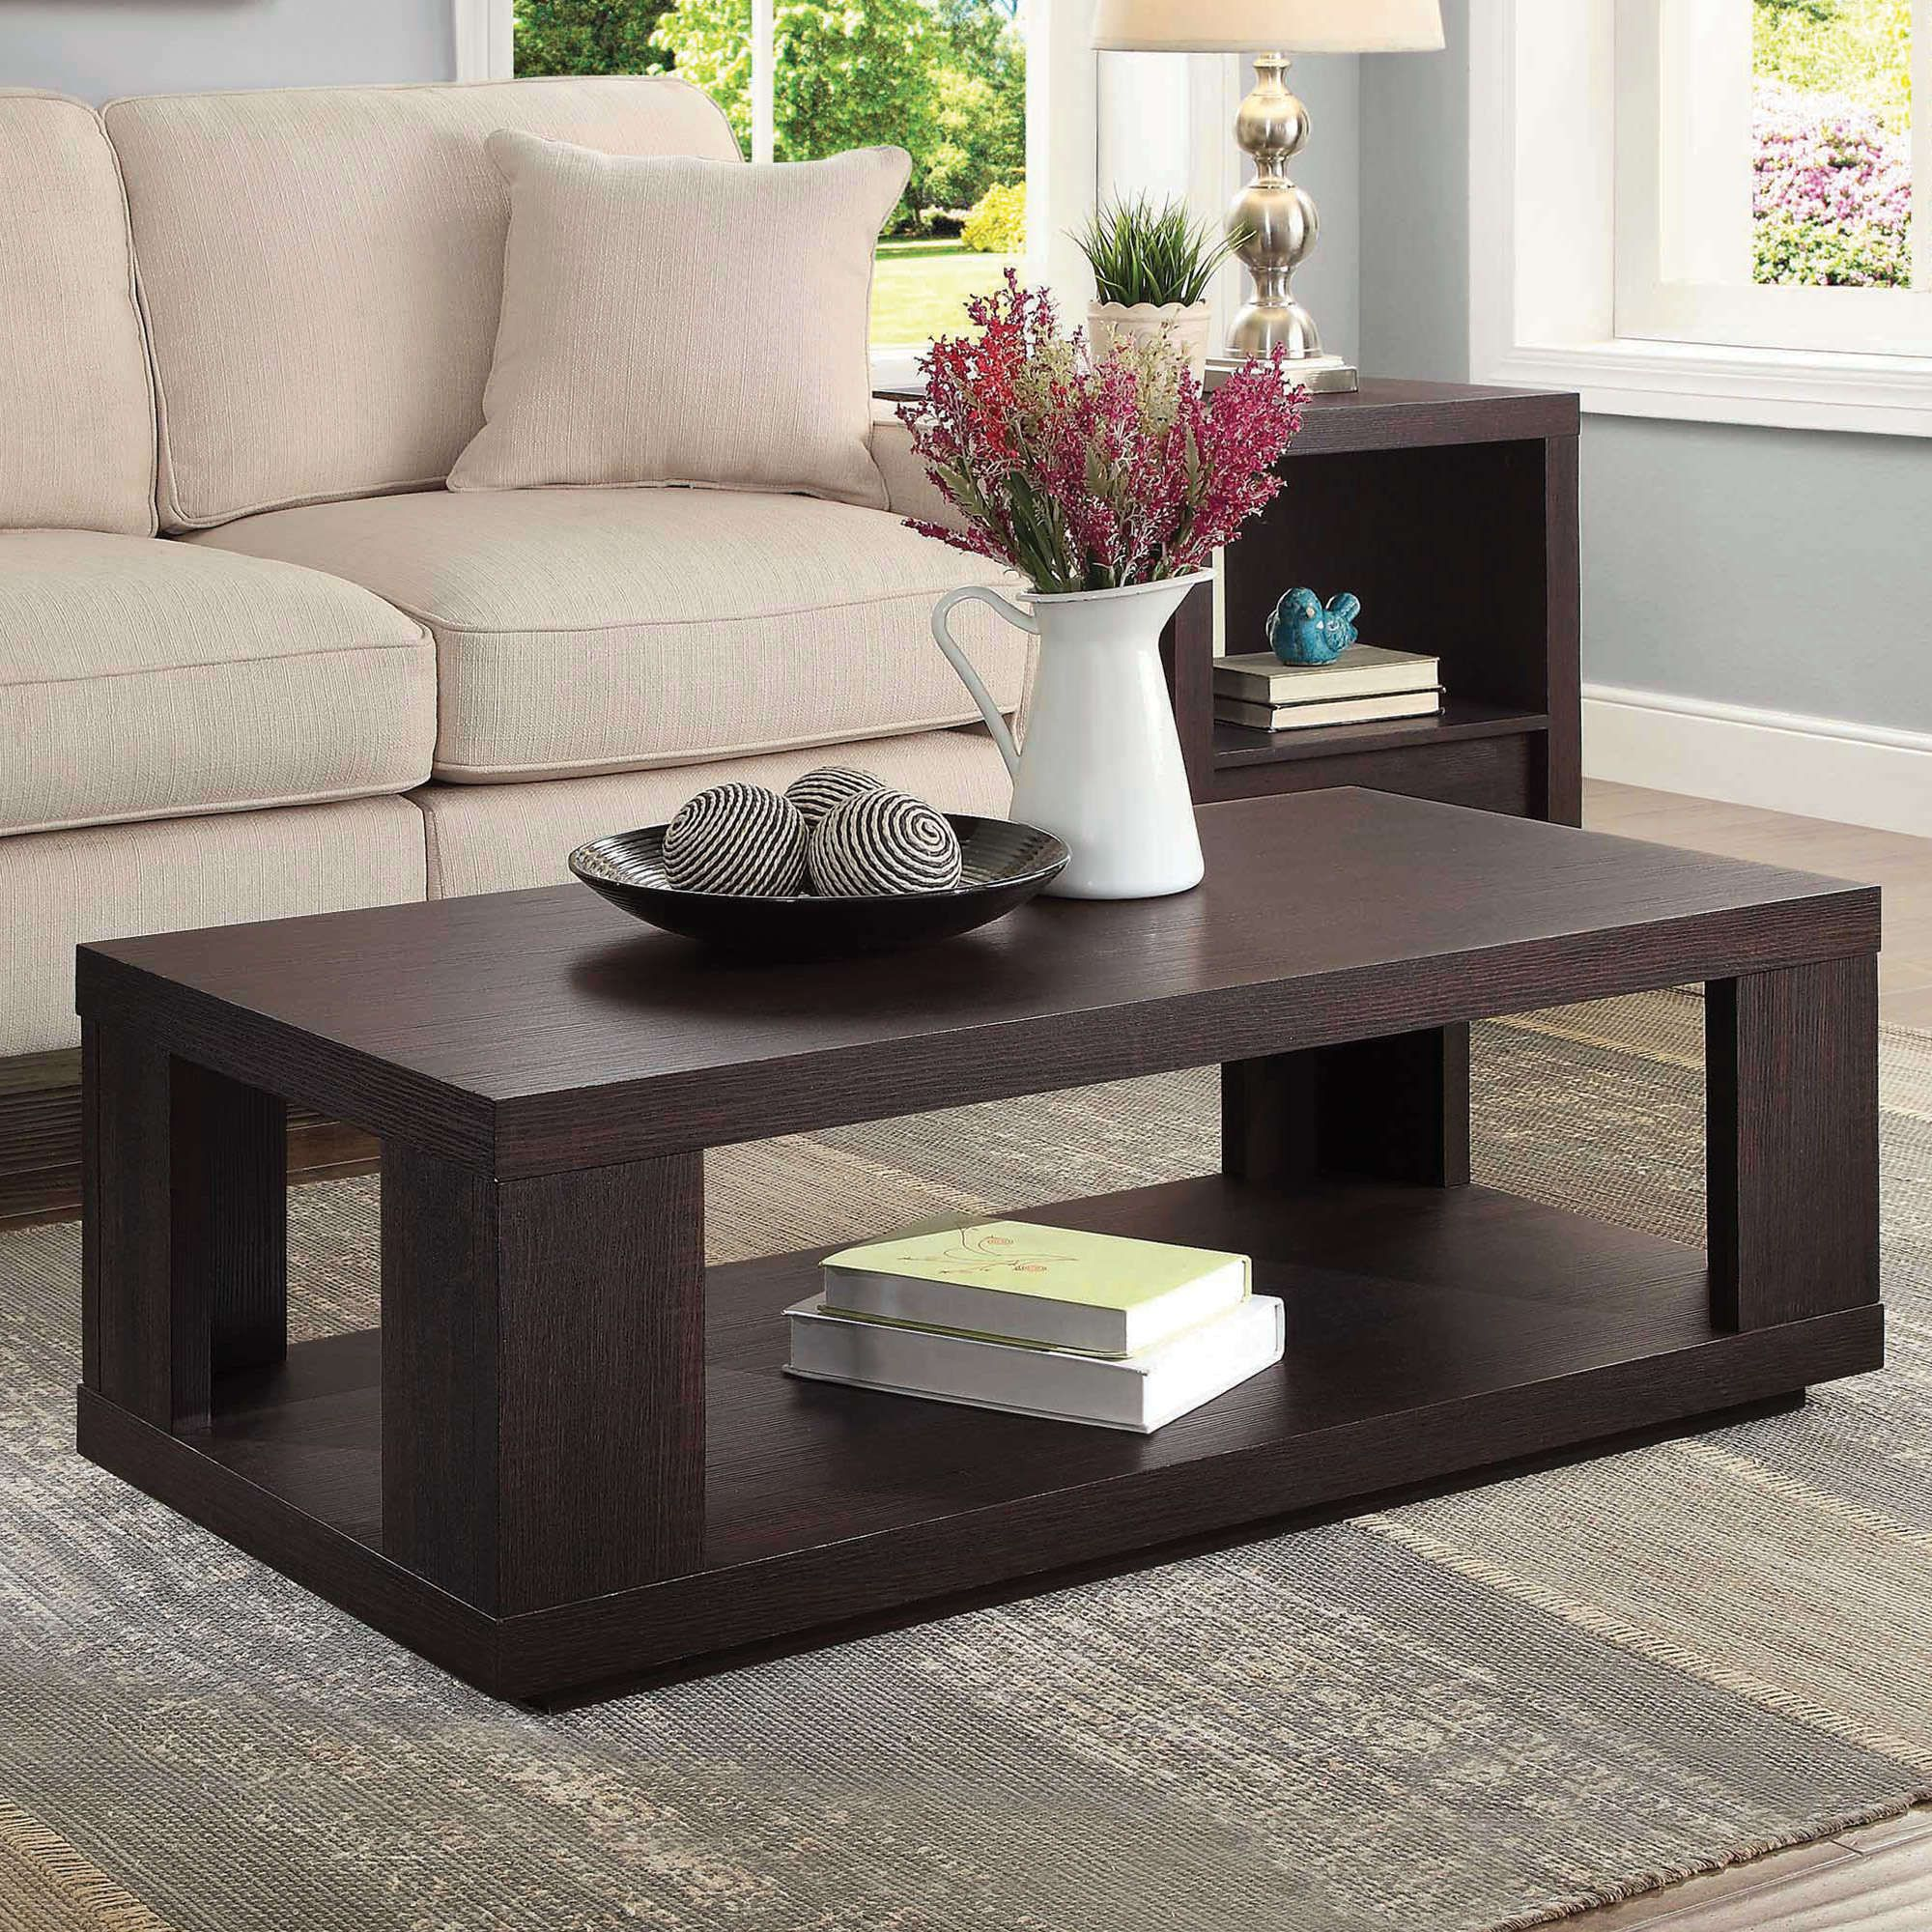 Home With Images Center Table Living Room Coffee Table